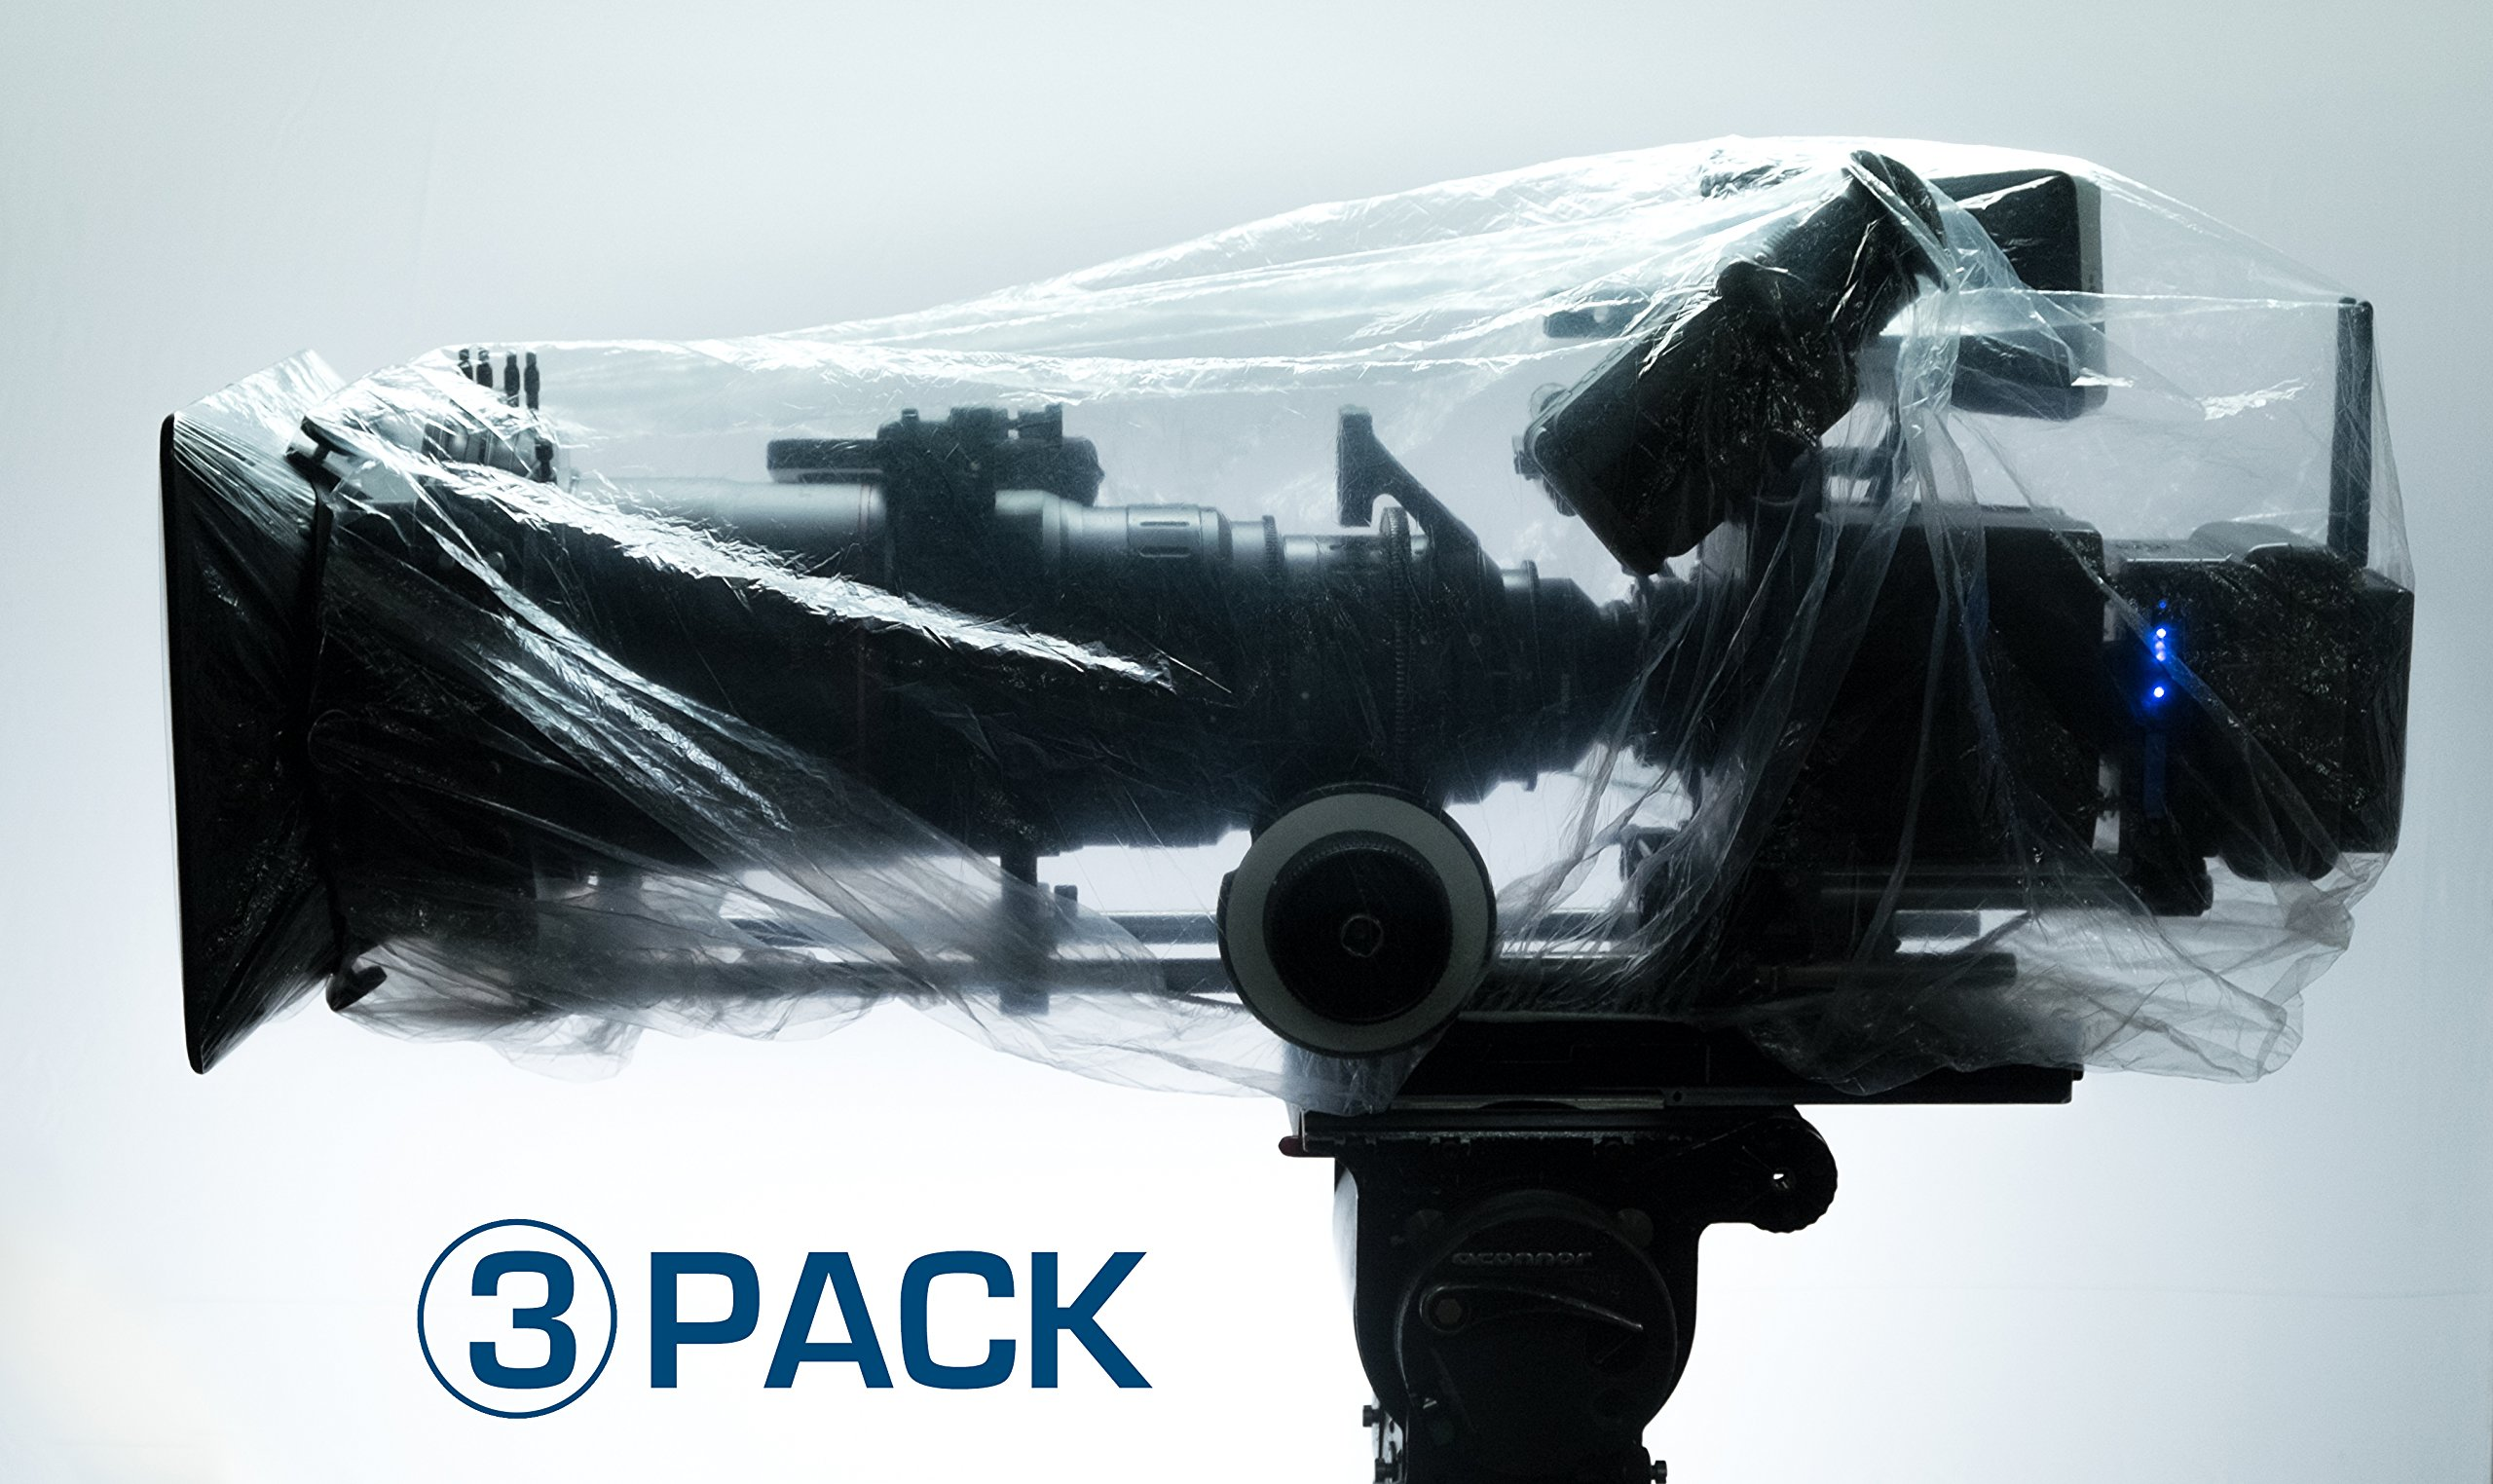 3 PACK CAP IT! COVERS (MEDIUM) CAMERA & ELECTRONICS PROTECTION PERFECT FOR ARRI, RED, SONY, PANASONIC, PANAVISION, BLACK MAGIC, STEADICAM, GIMBLE RIGS AND MORE by CAP IT!